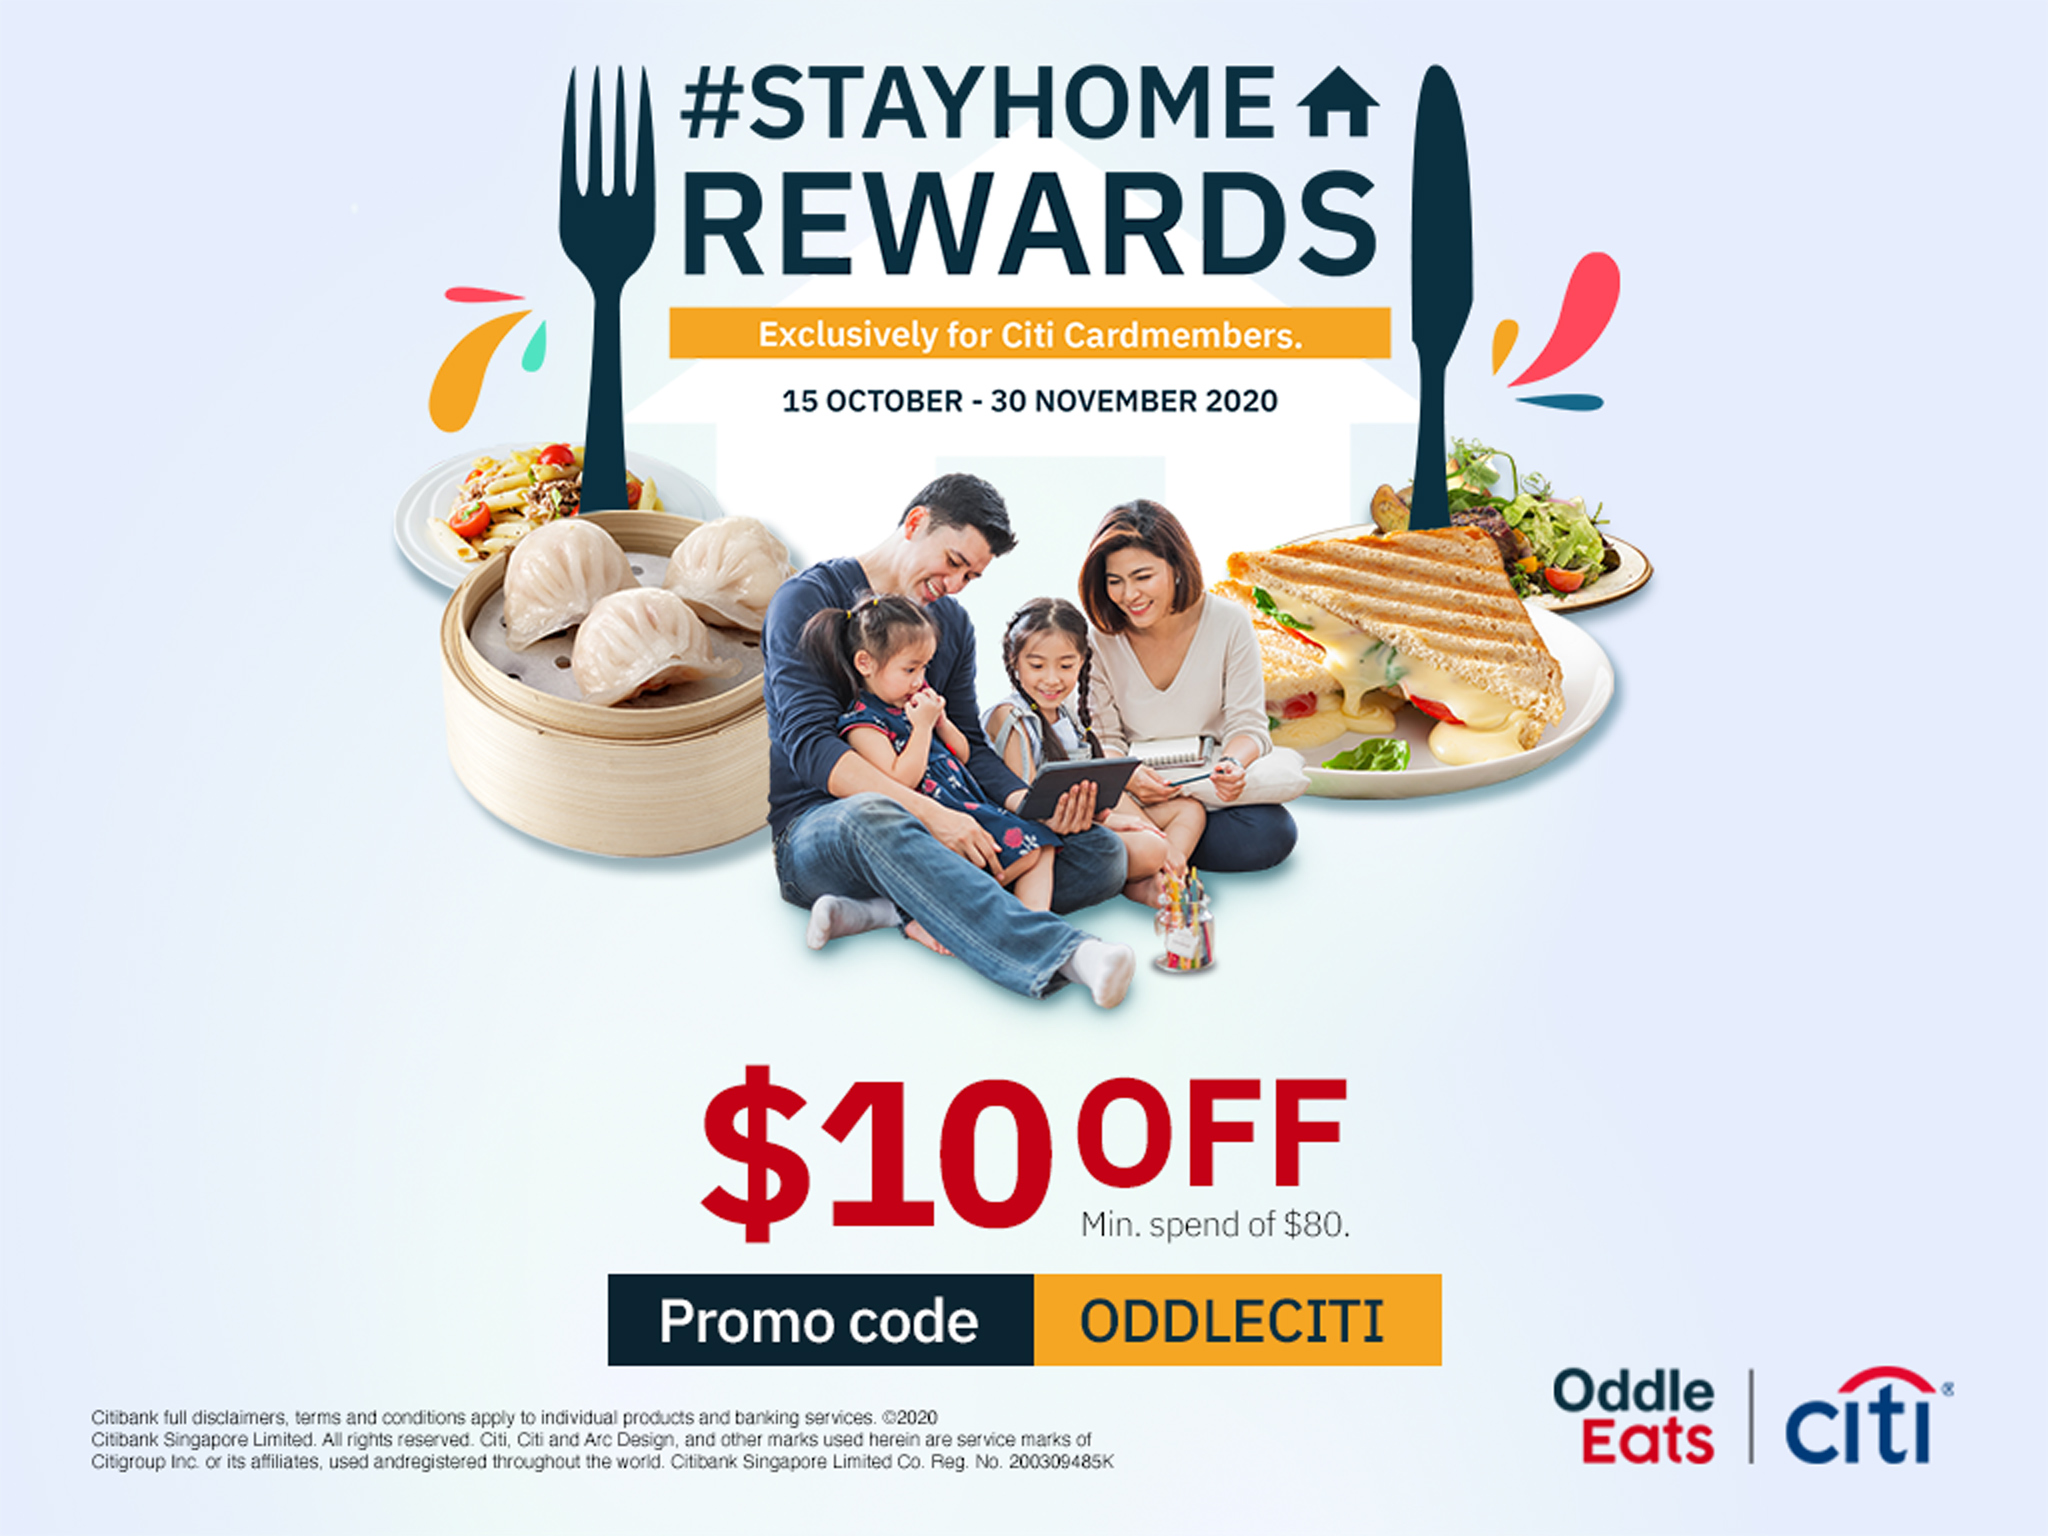 Enjoy $10 off with your Citi Card!